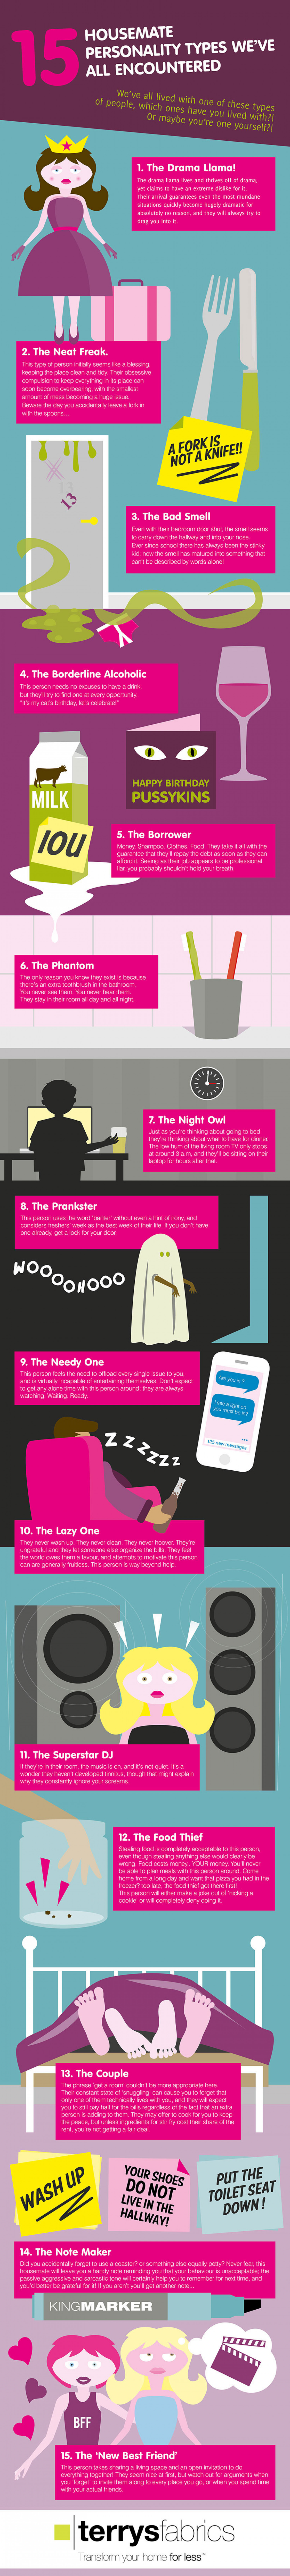 15 Housemates Personality Types we've all encountered Infographic